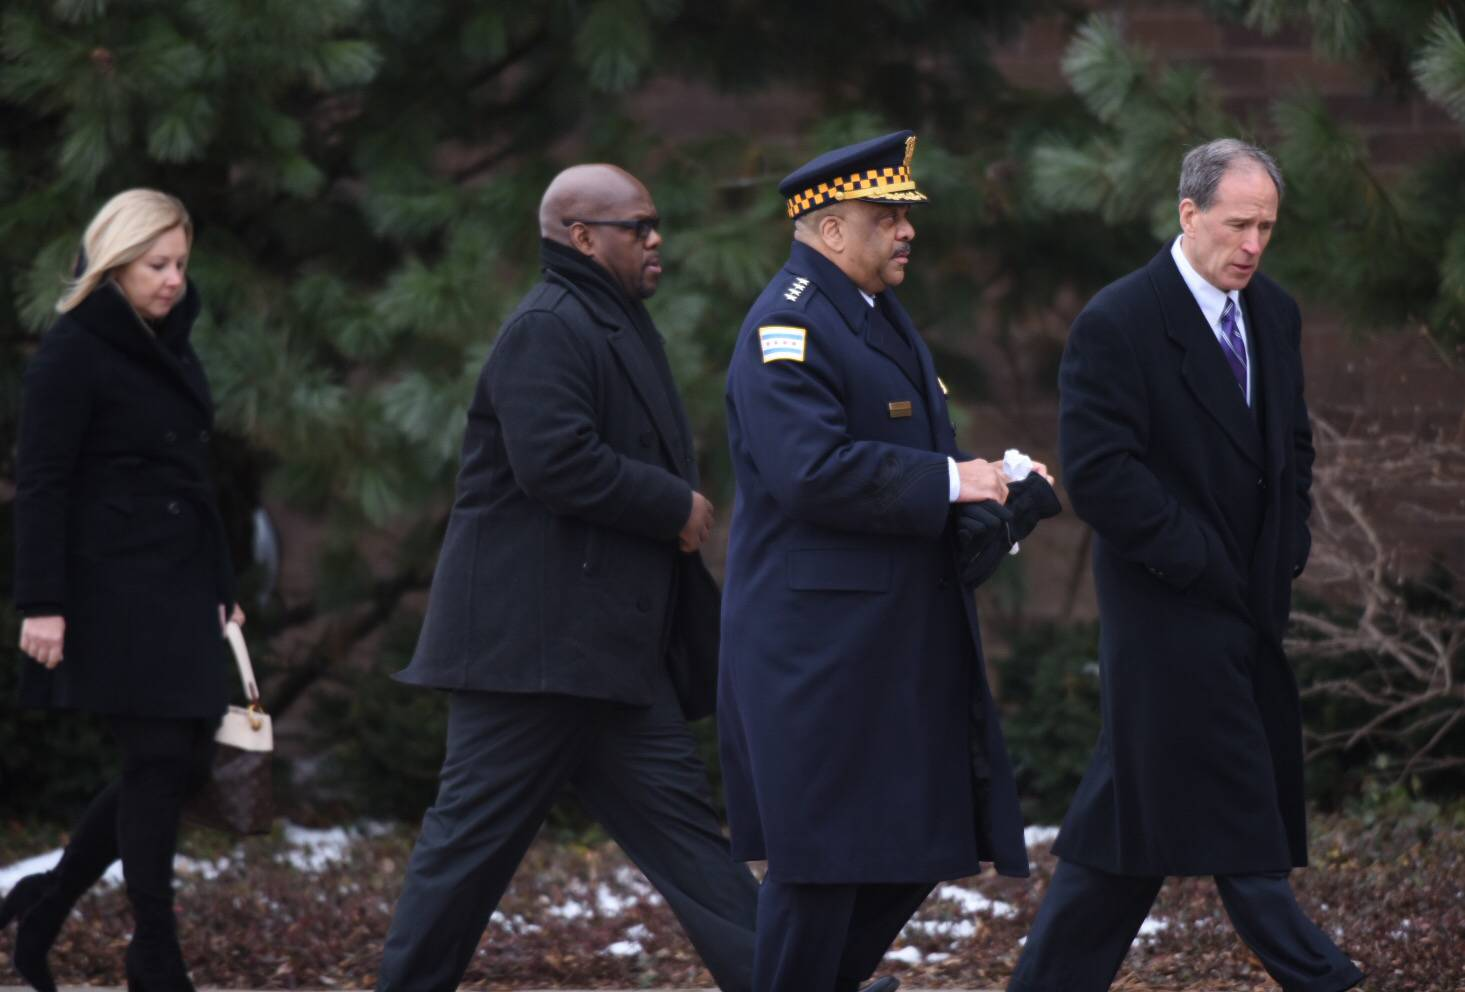 Chicago police Superintendent Eddie Johnson arrives Friday morning at the funeral for Illinois State Police Trooper Christopher Lambert at Willow Creek Community Church in South Barrington.